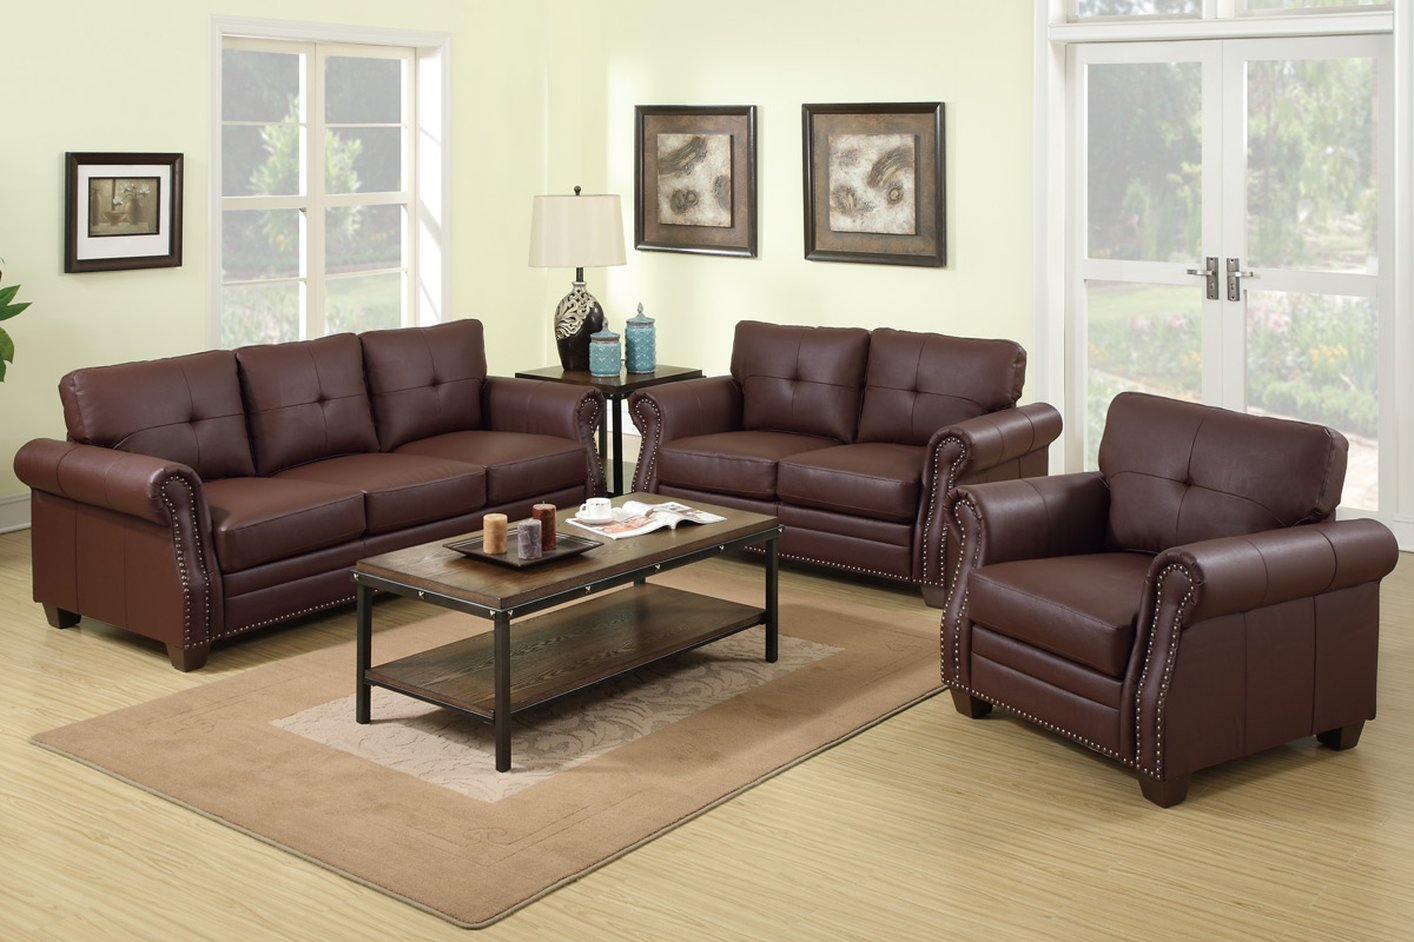 Poundex baron f7799 brown leather sofa and loveseat set steal a sofa furniture outlet los Sofa loveseat